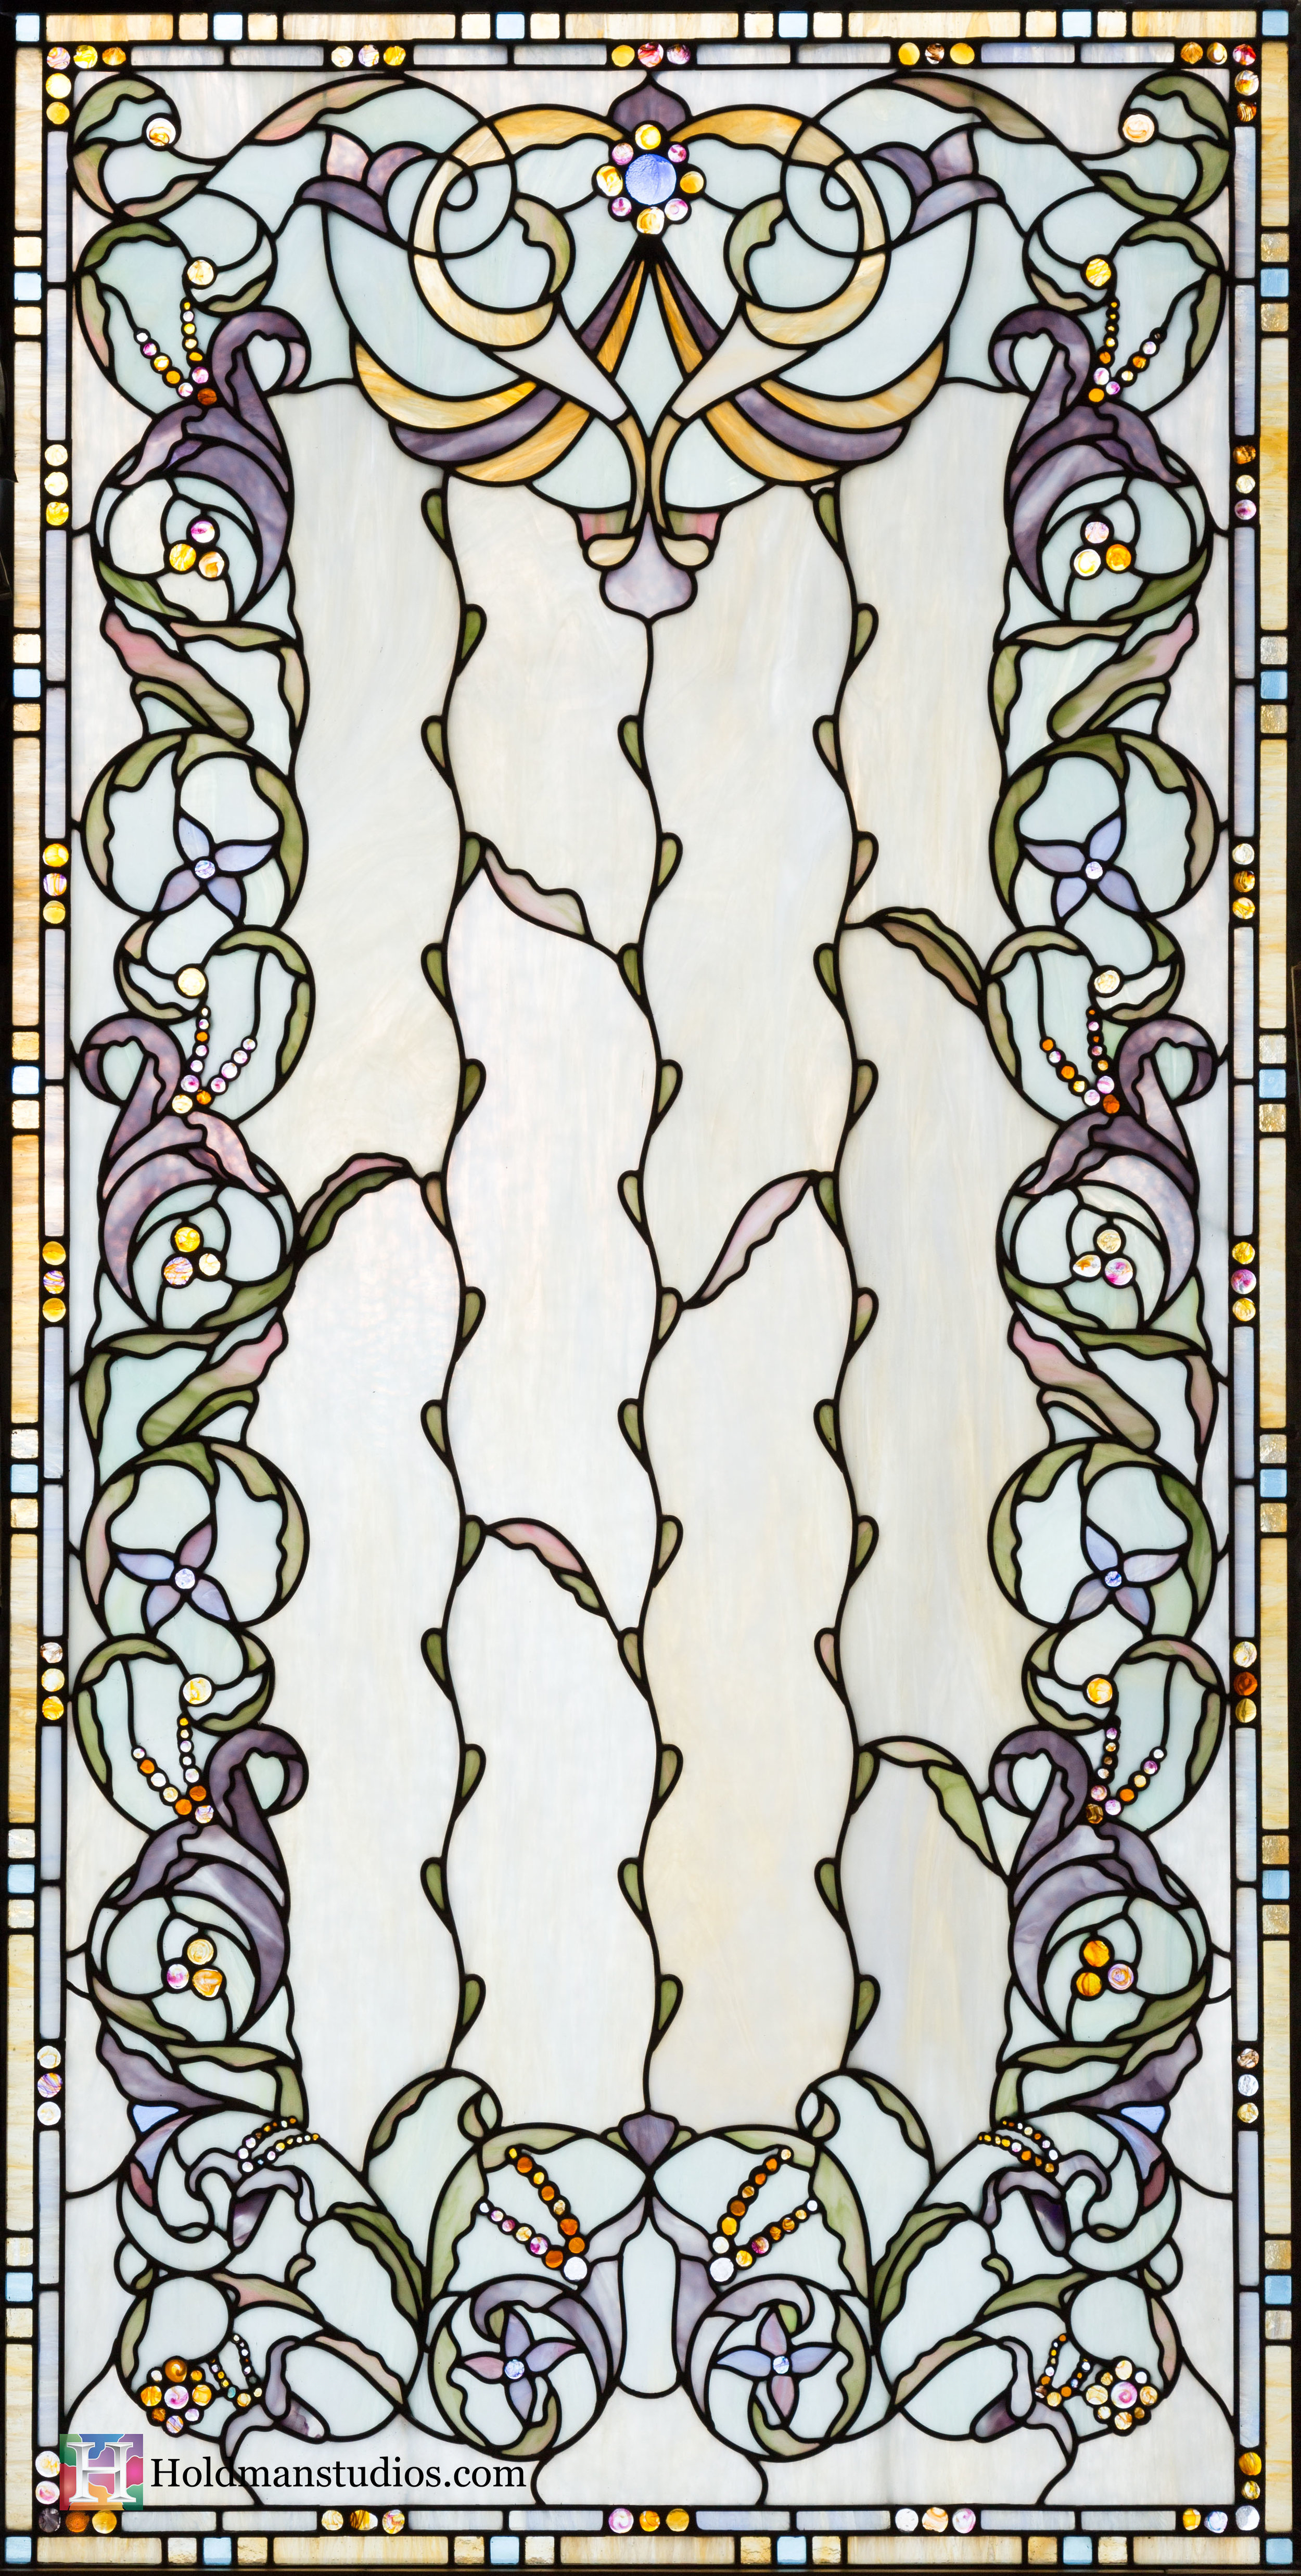 Holdman-Studios-Stained-Glass-Window-Flowers-Floral-Pattern-Handmade-Jewels-Square-Rectangles2.jpg